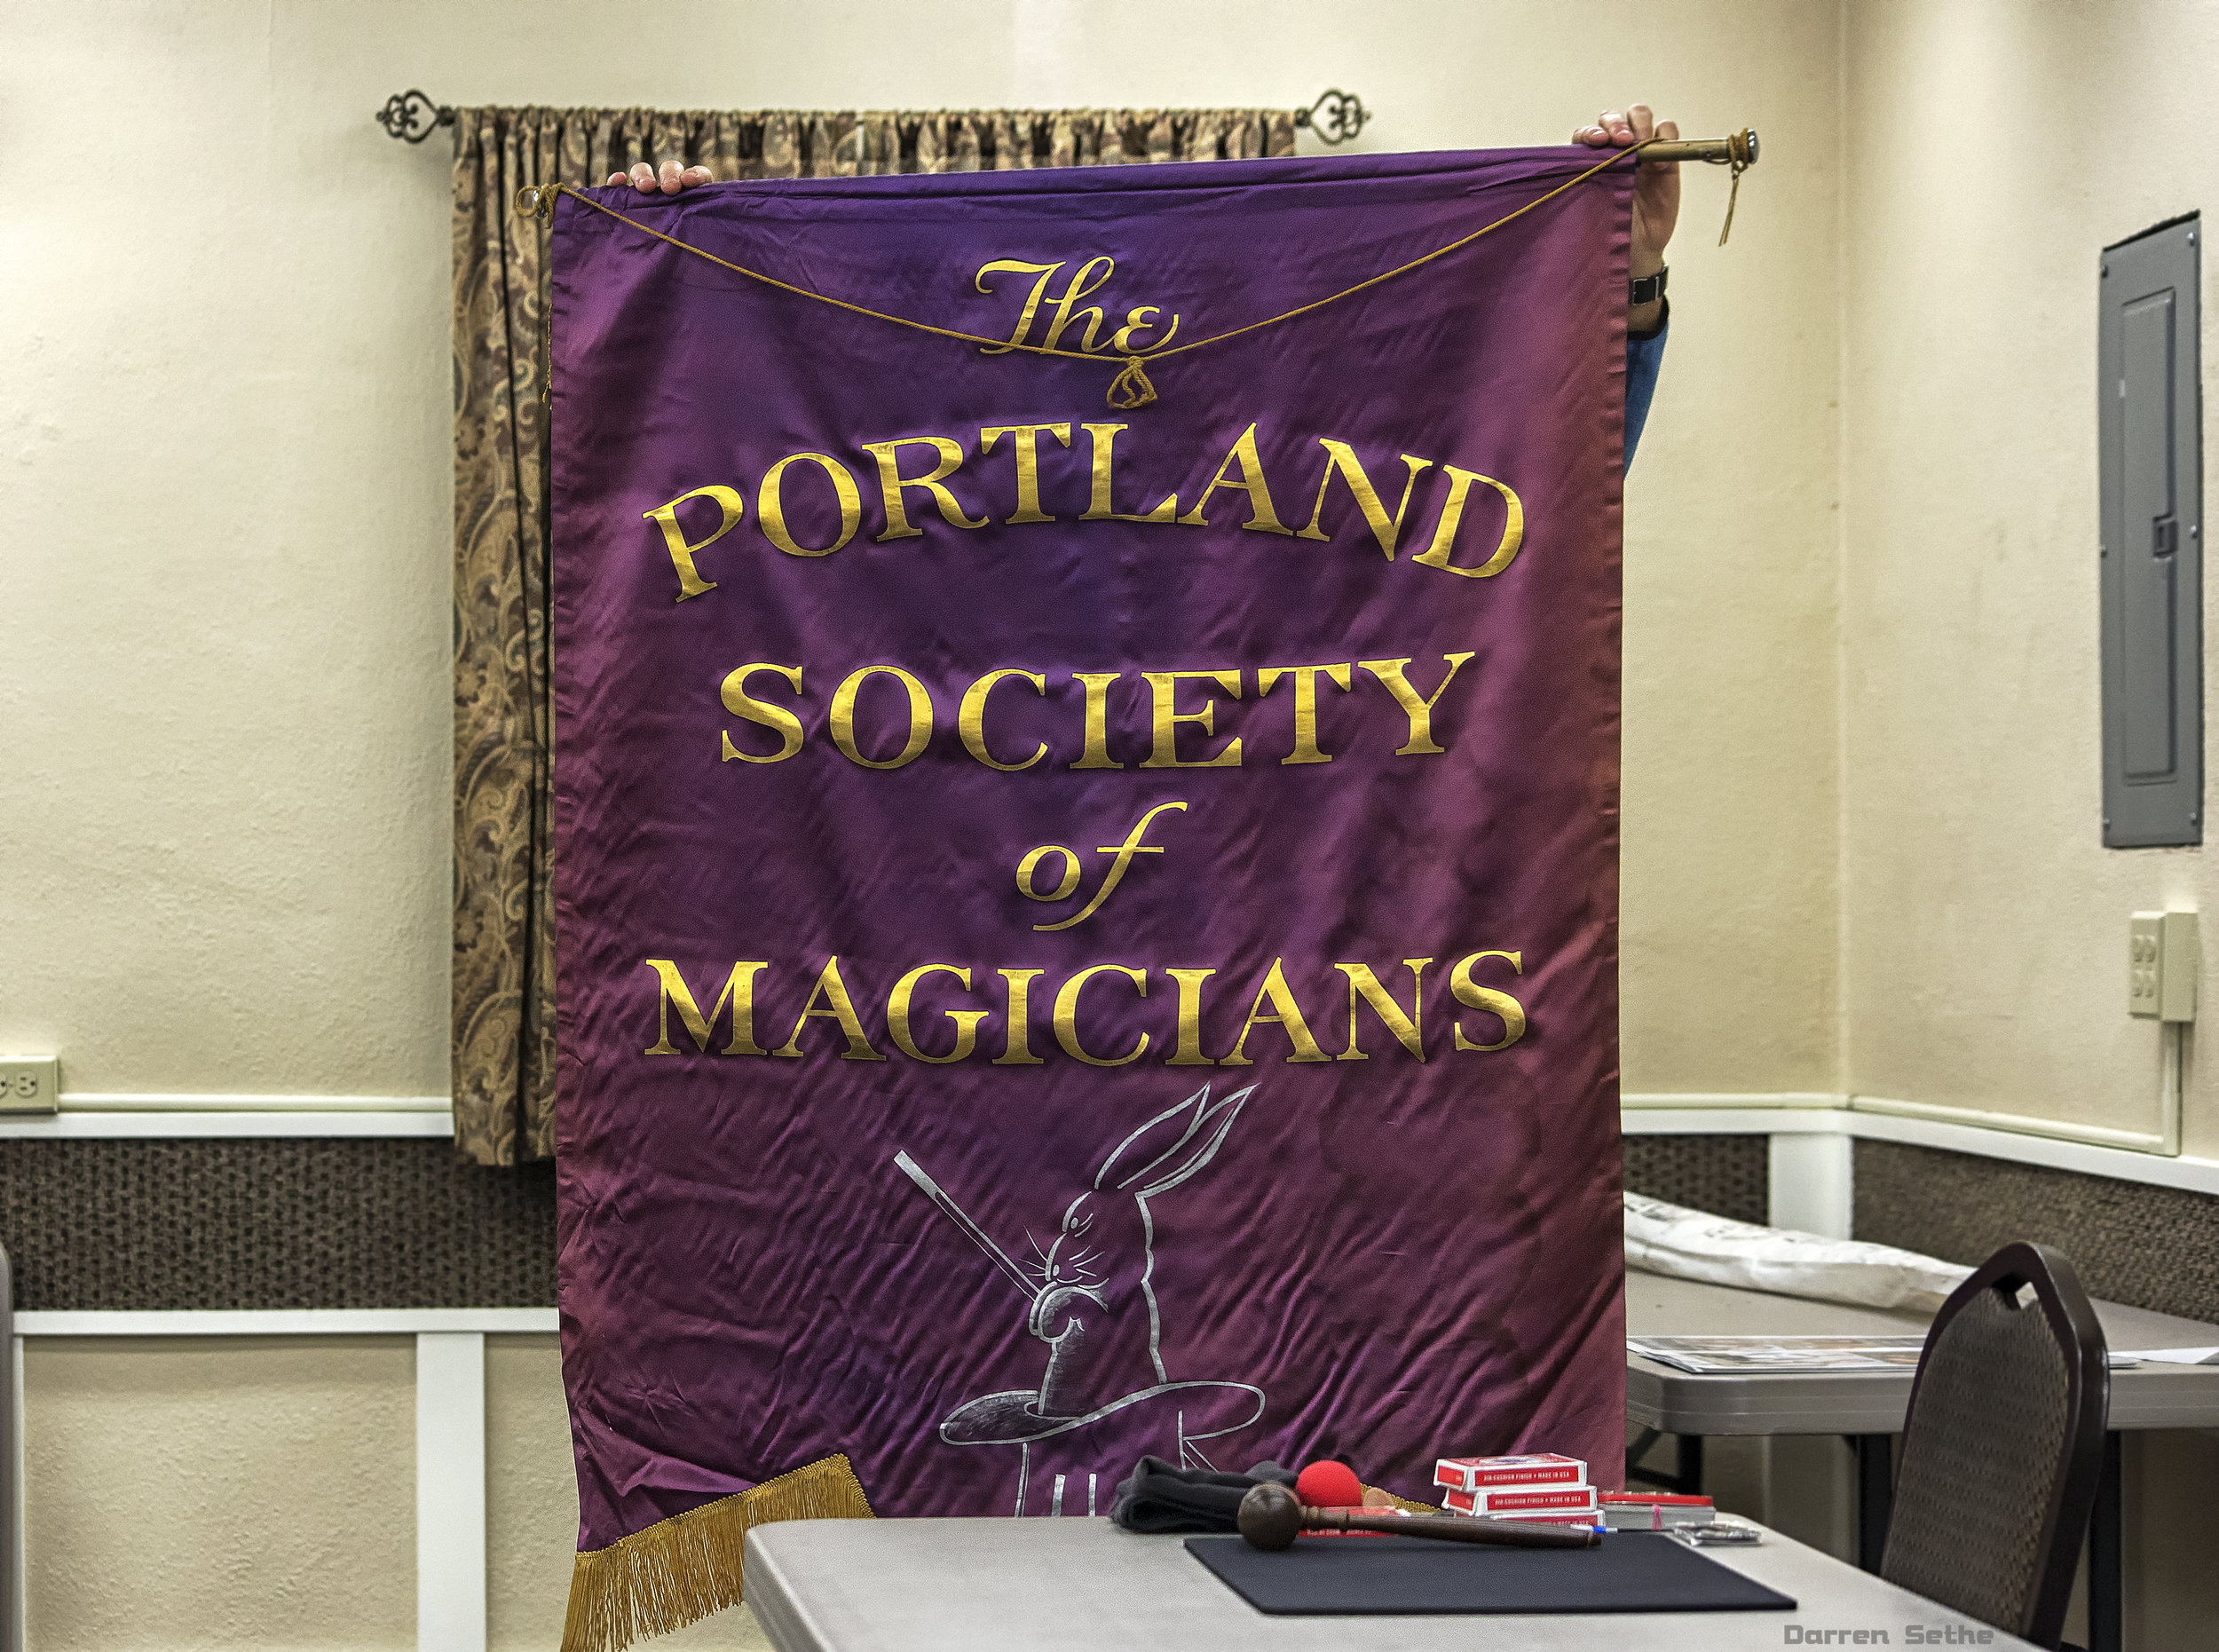 The PSM banner gets dusted off and comes out for a visit (photo by Darren Sethe 2019).